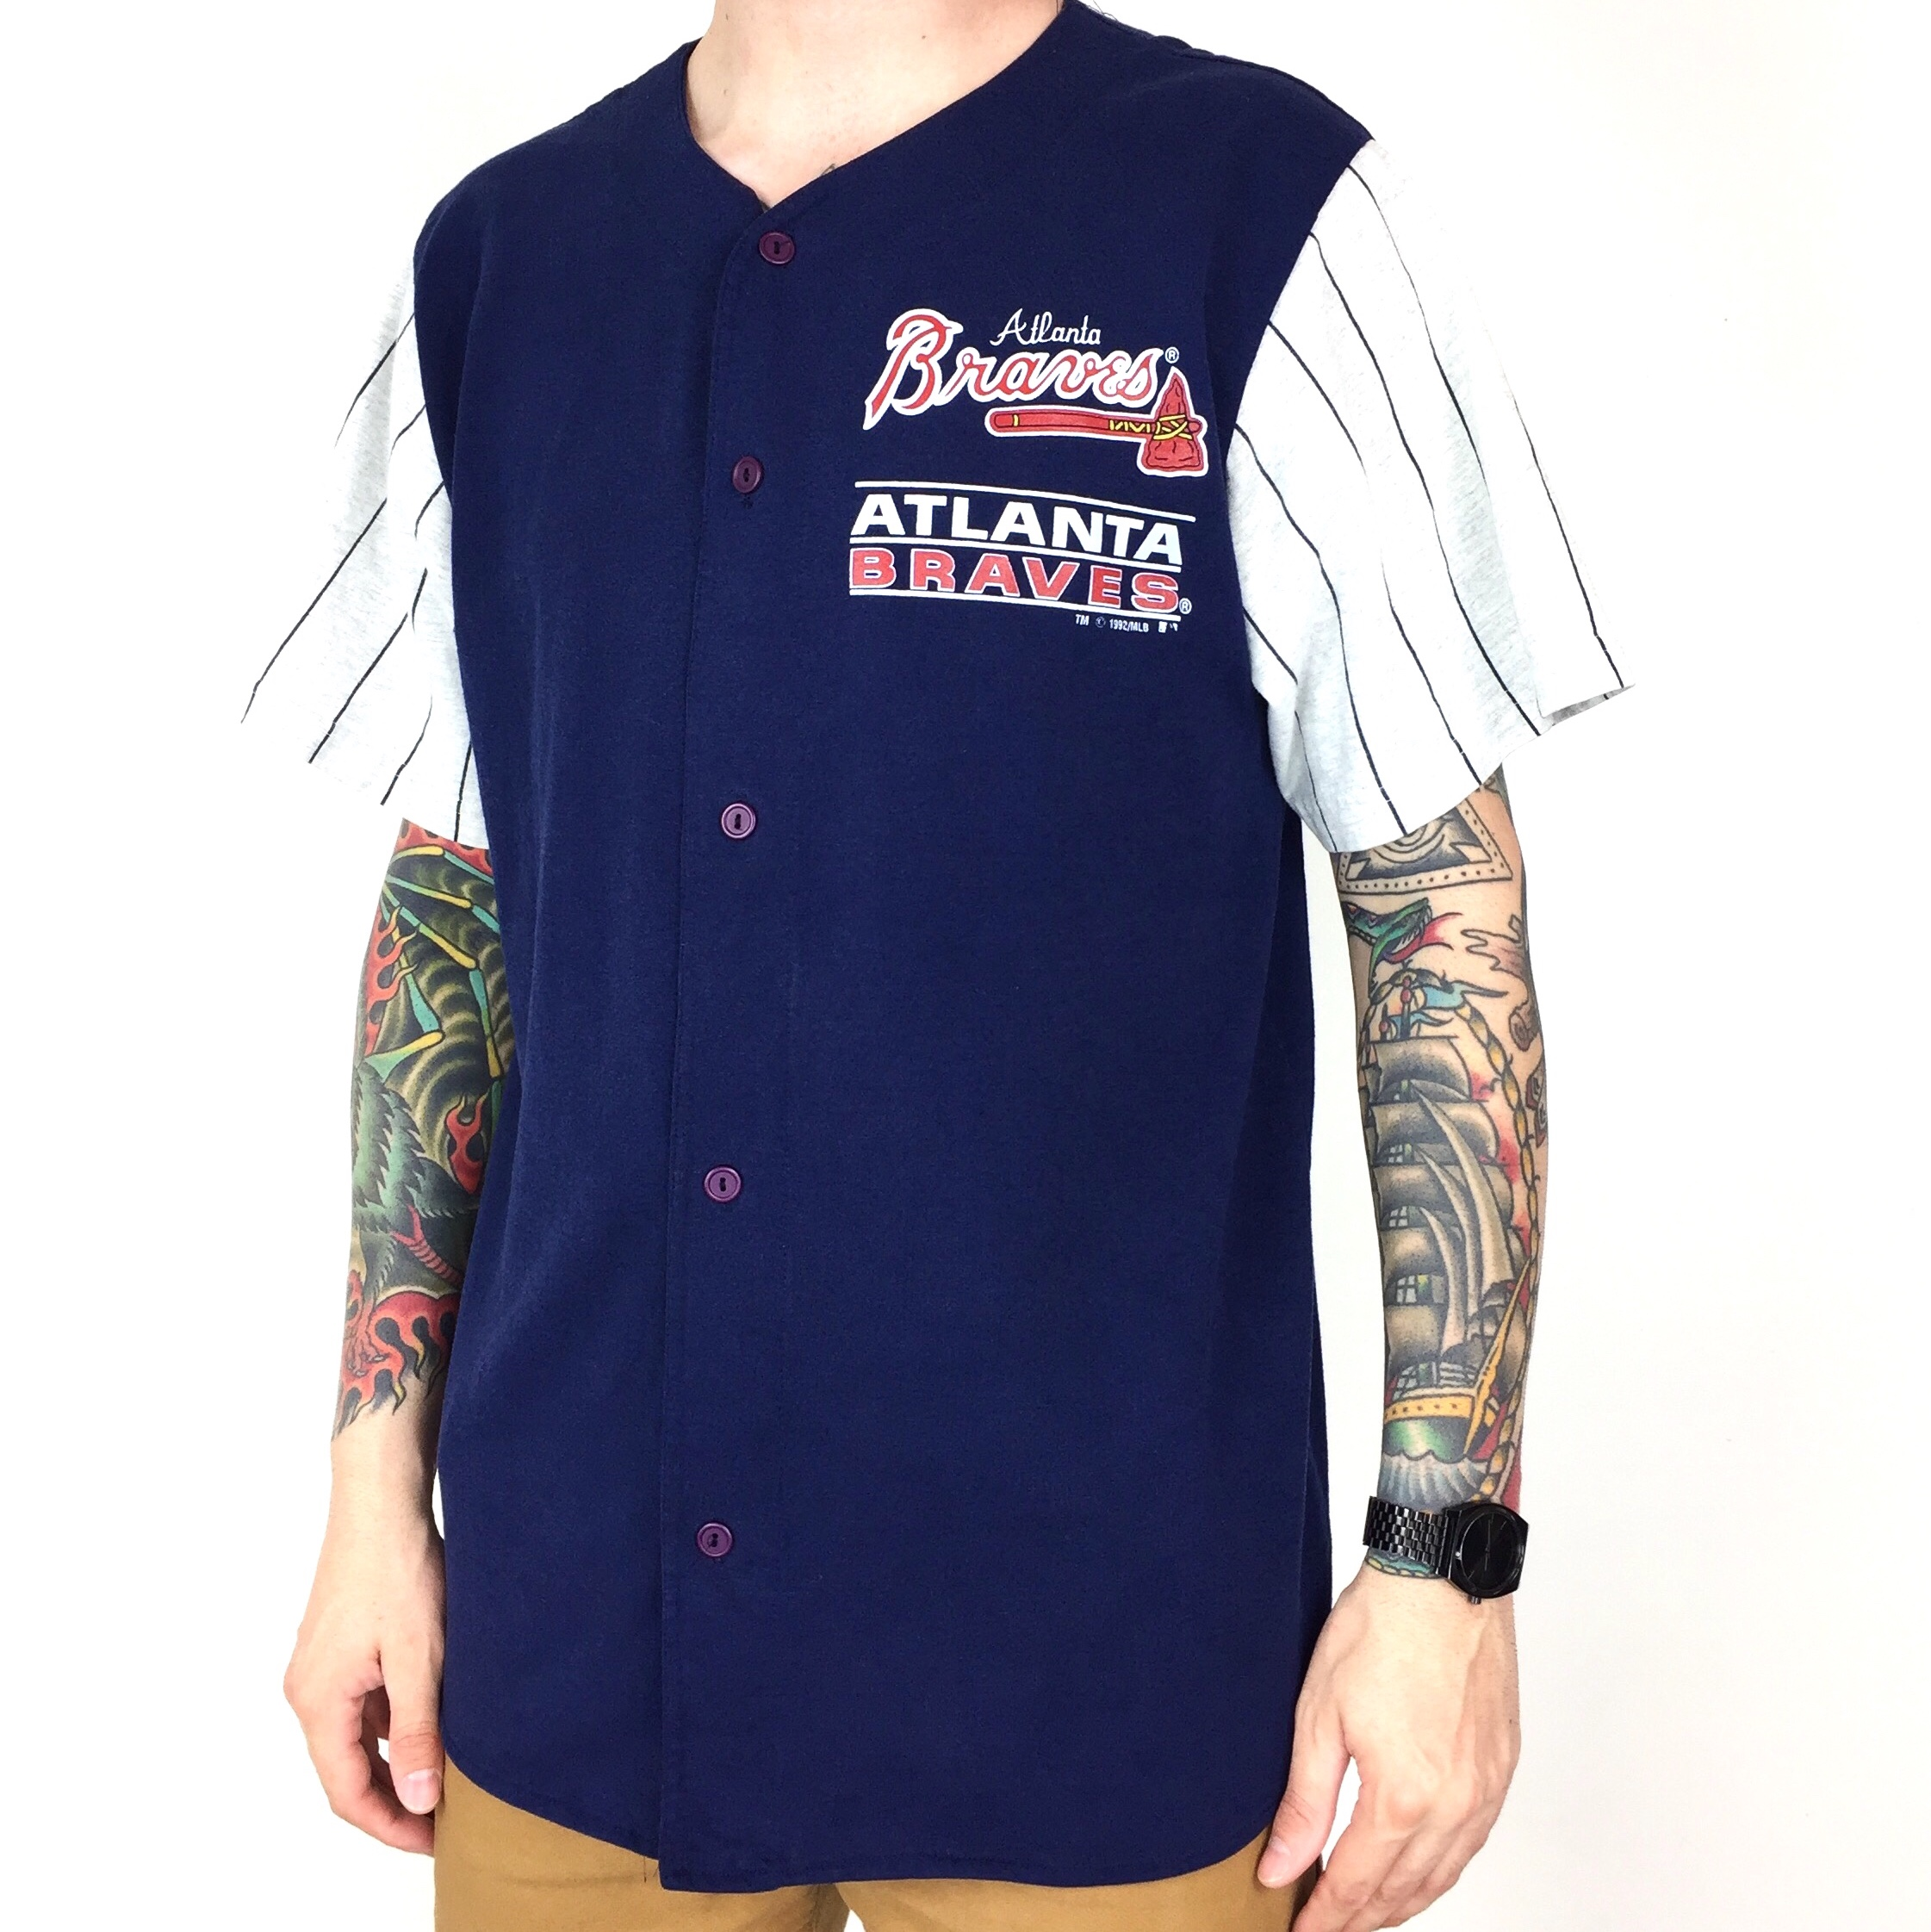 cheap for discount caca4 52aea Vintage 90s 1992 92 MLB Atlanta Braves Competitor... - Depop